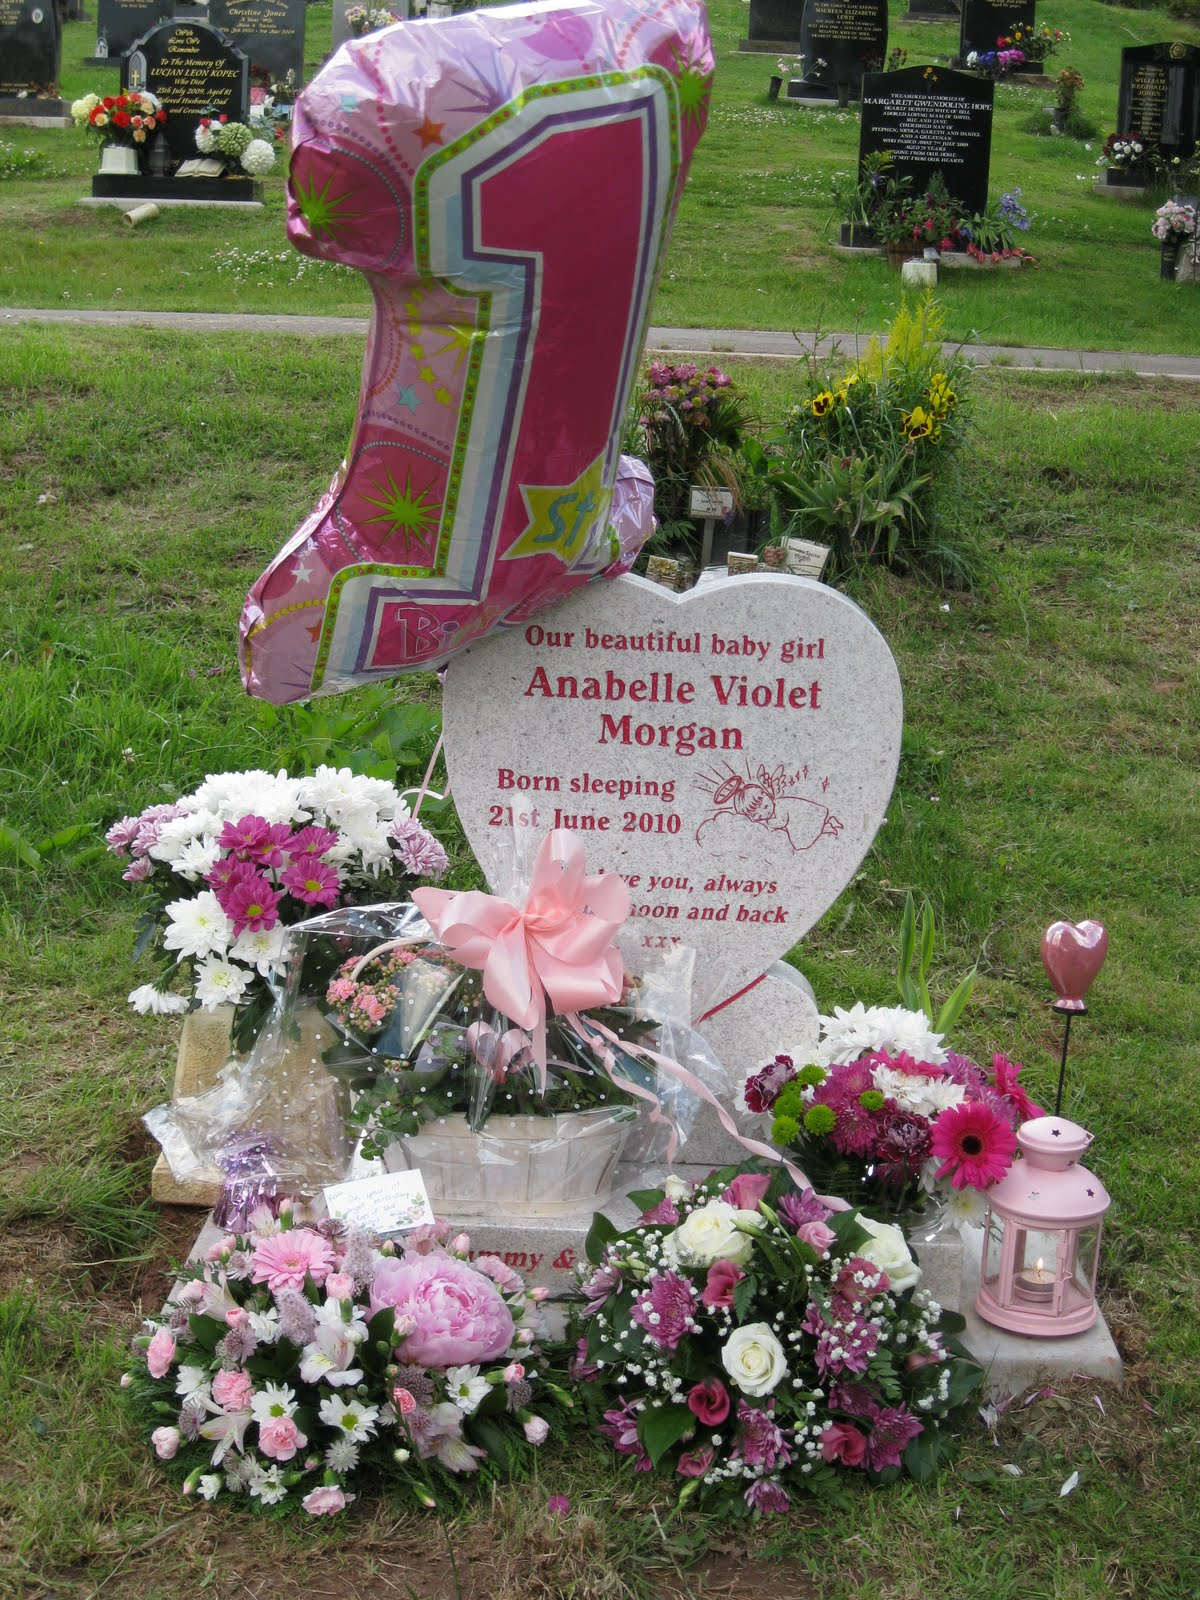 After anabelle happy 1st birthday belle beautiful pinkified garden for belles birthday izmirmasajfo